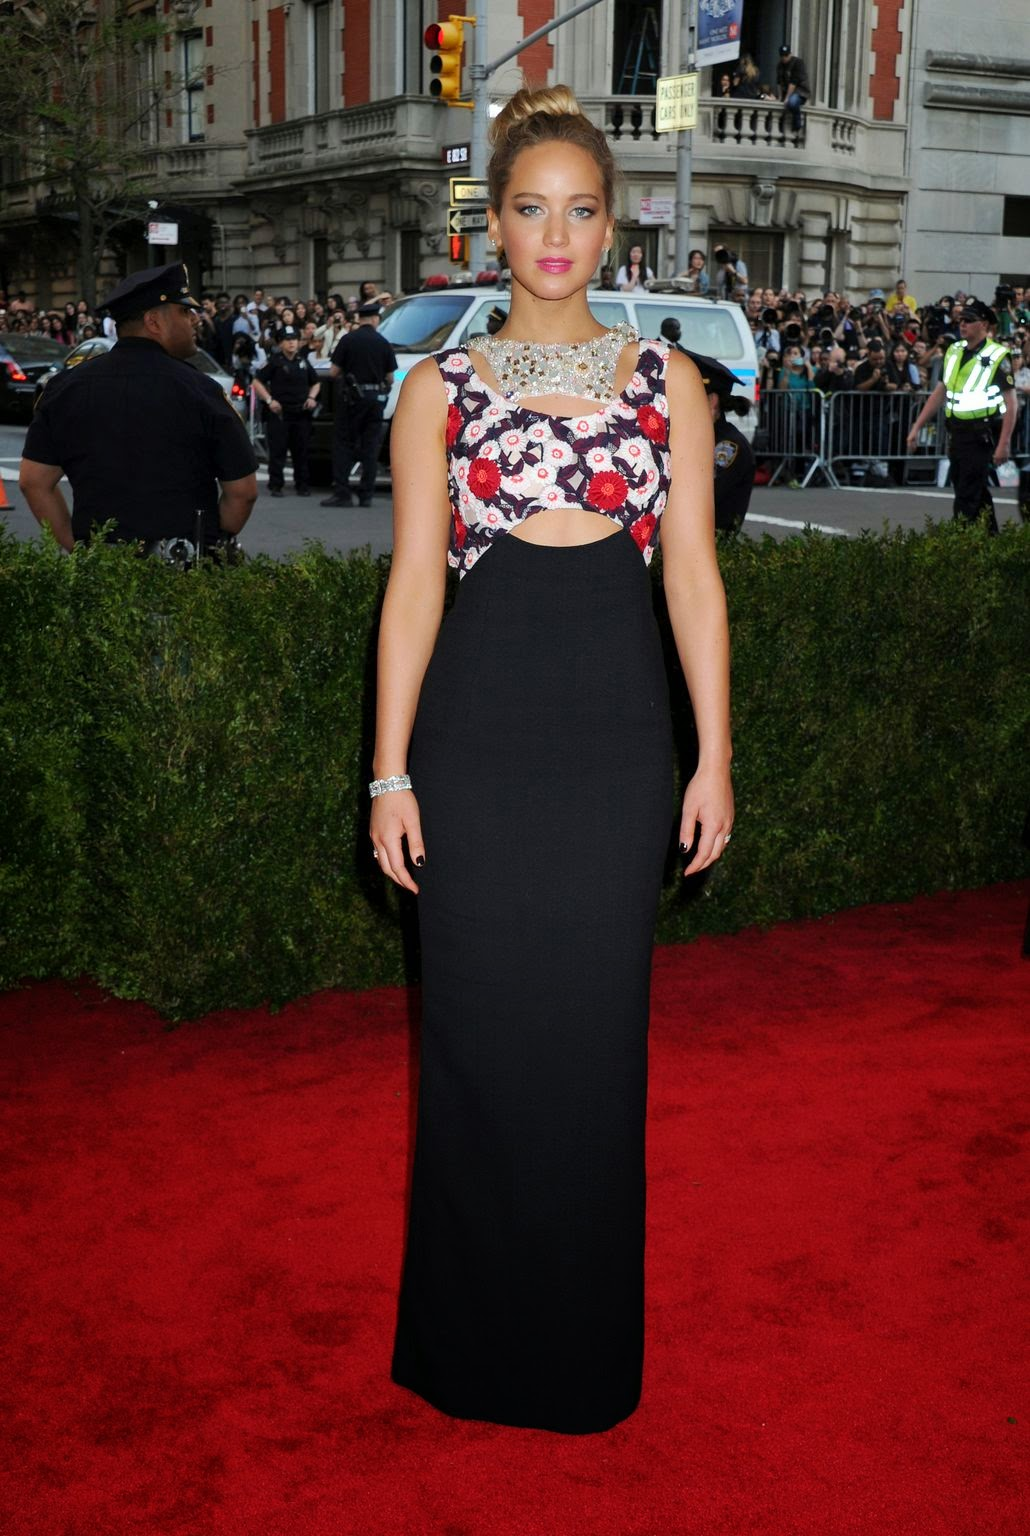 Jennifer Lawrence wears figure hugging Dior Couture to the 2015 Met Gala in NYC